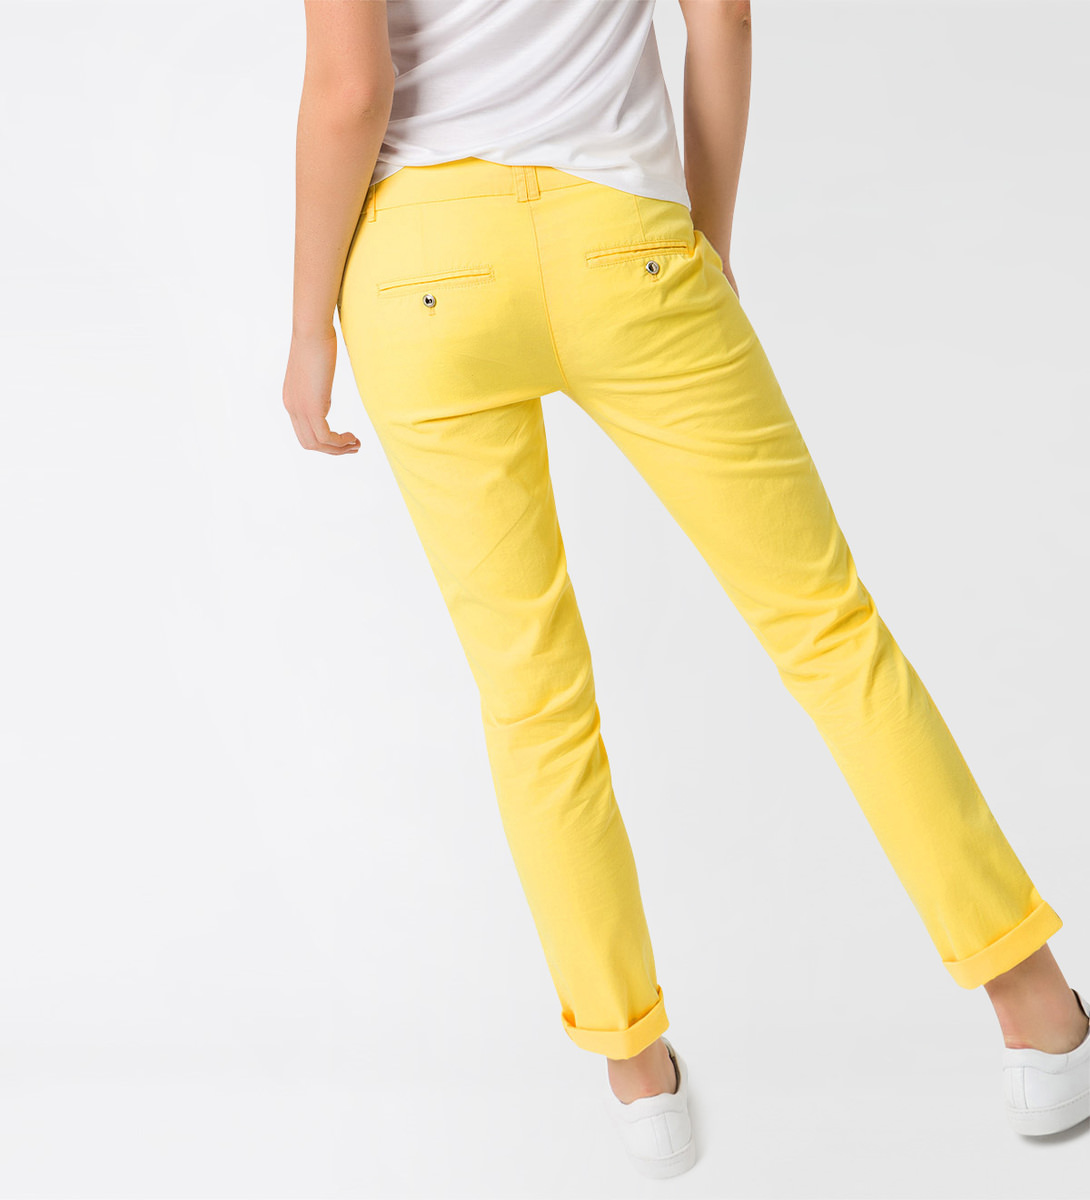 Chino Claire 32 Inch in lemon